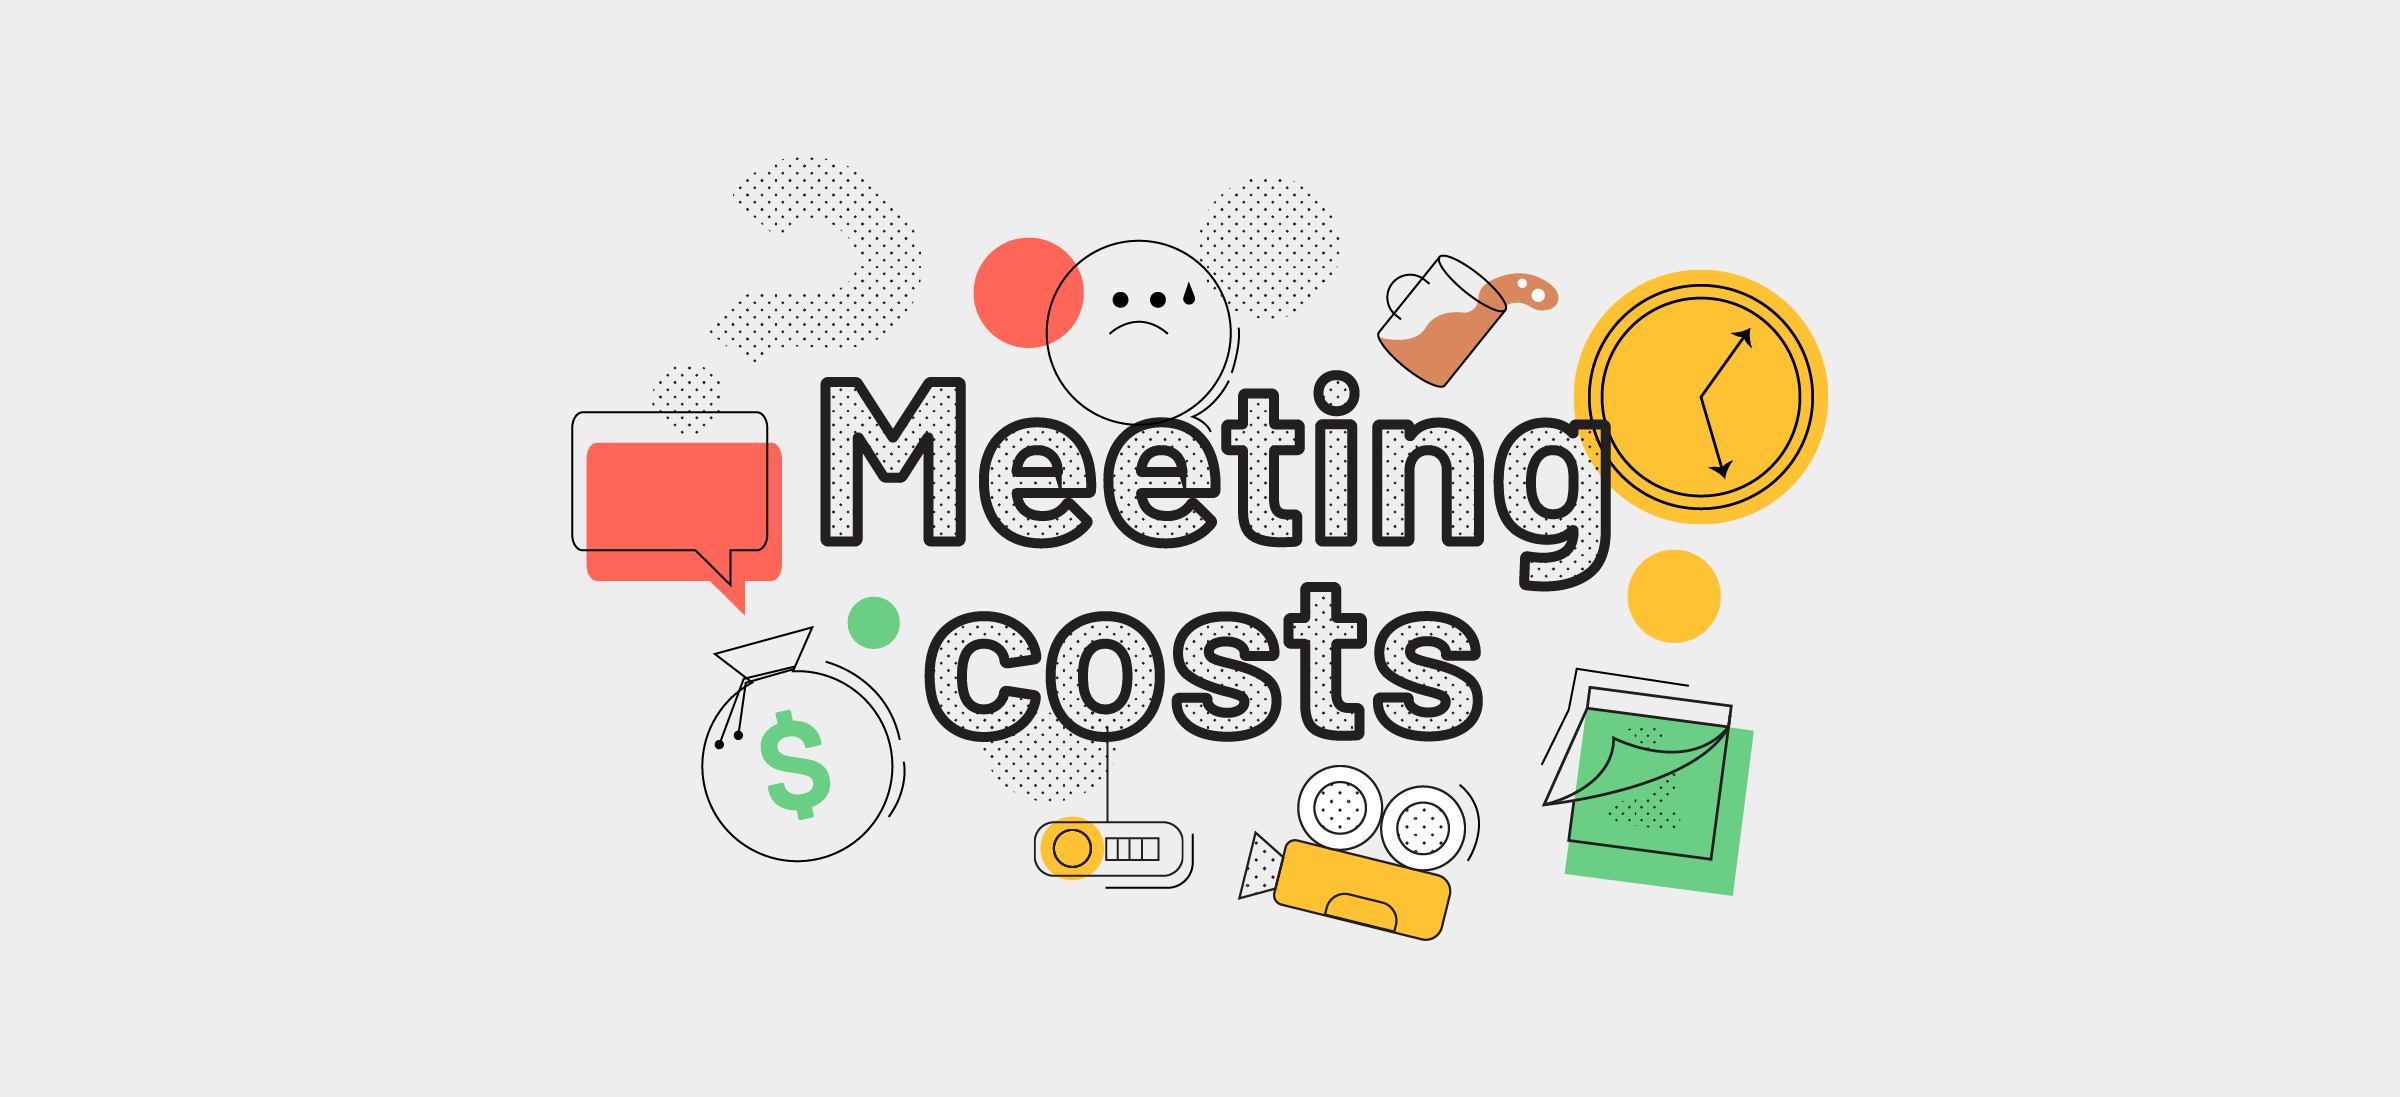 The real cost of business meetings